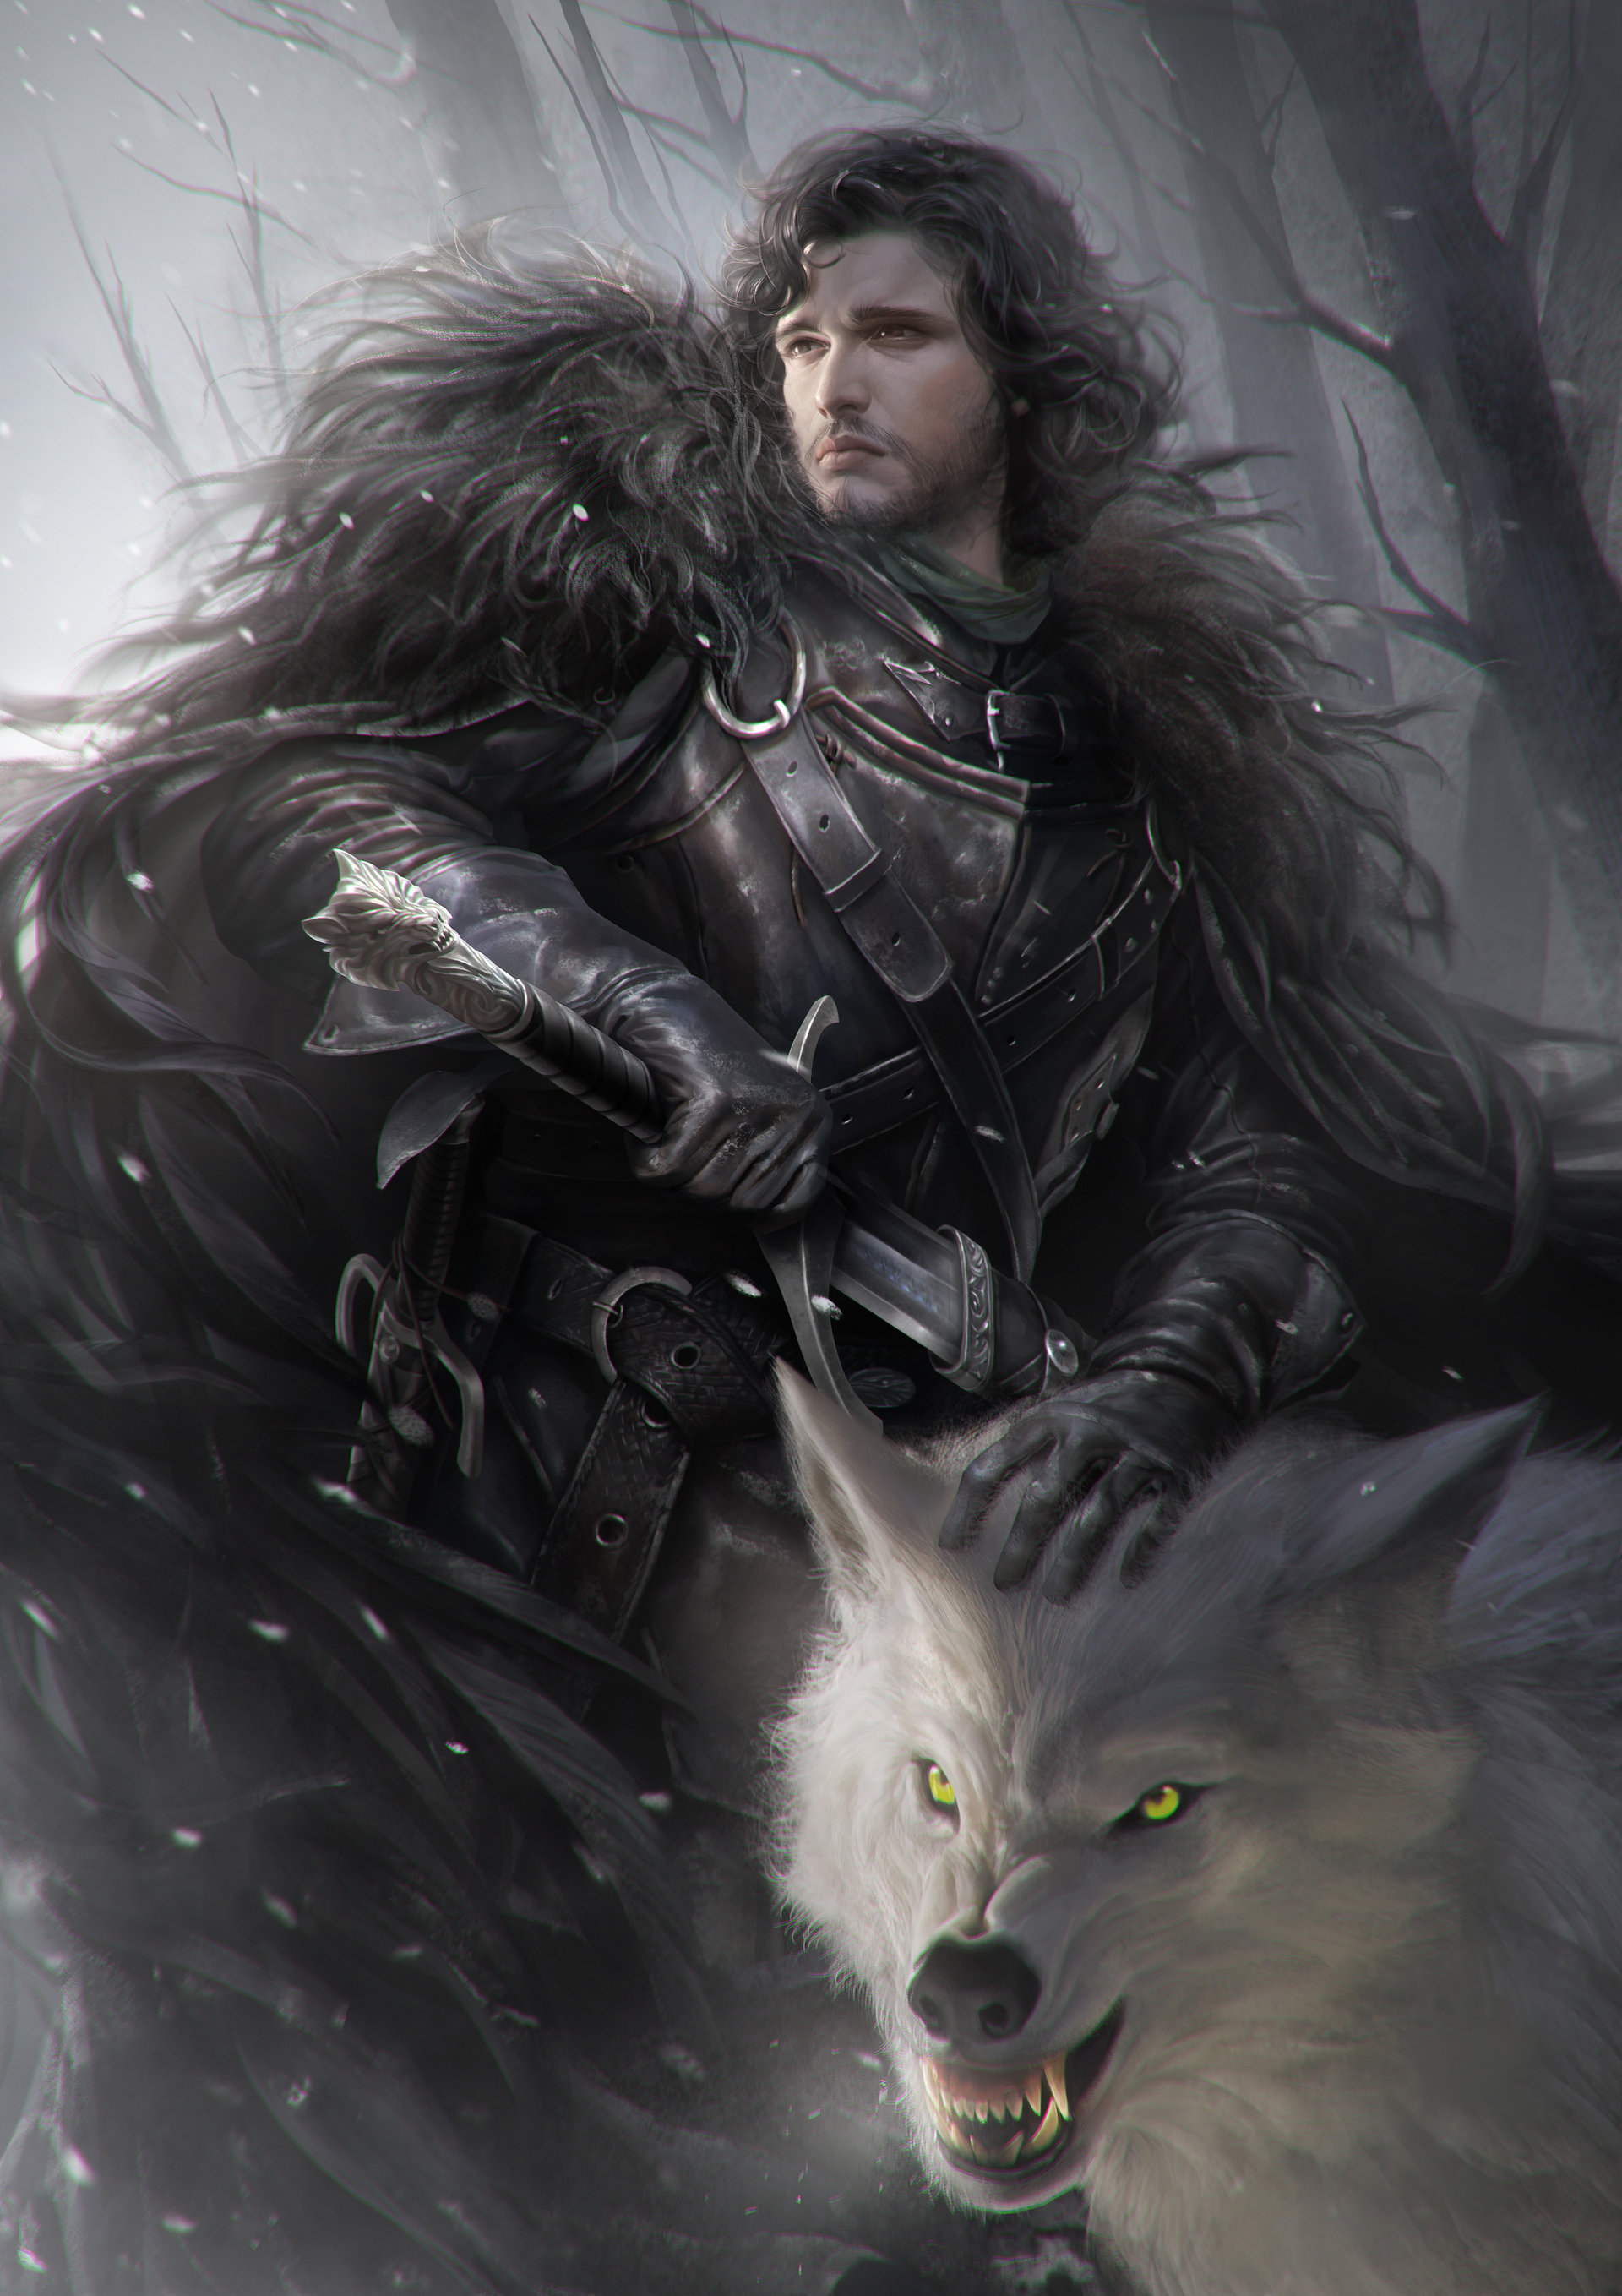 Jon Snow Mobile Wallpaper Zerochan Anime Image Board Mobile